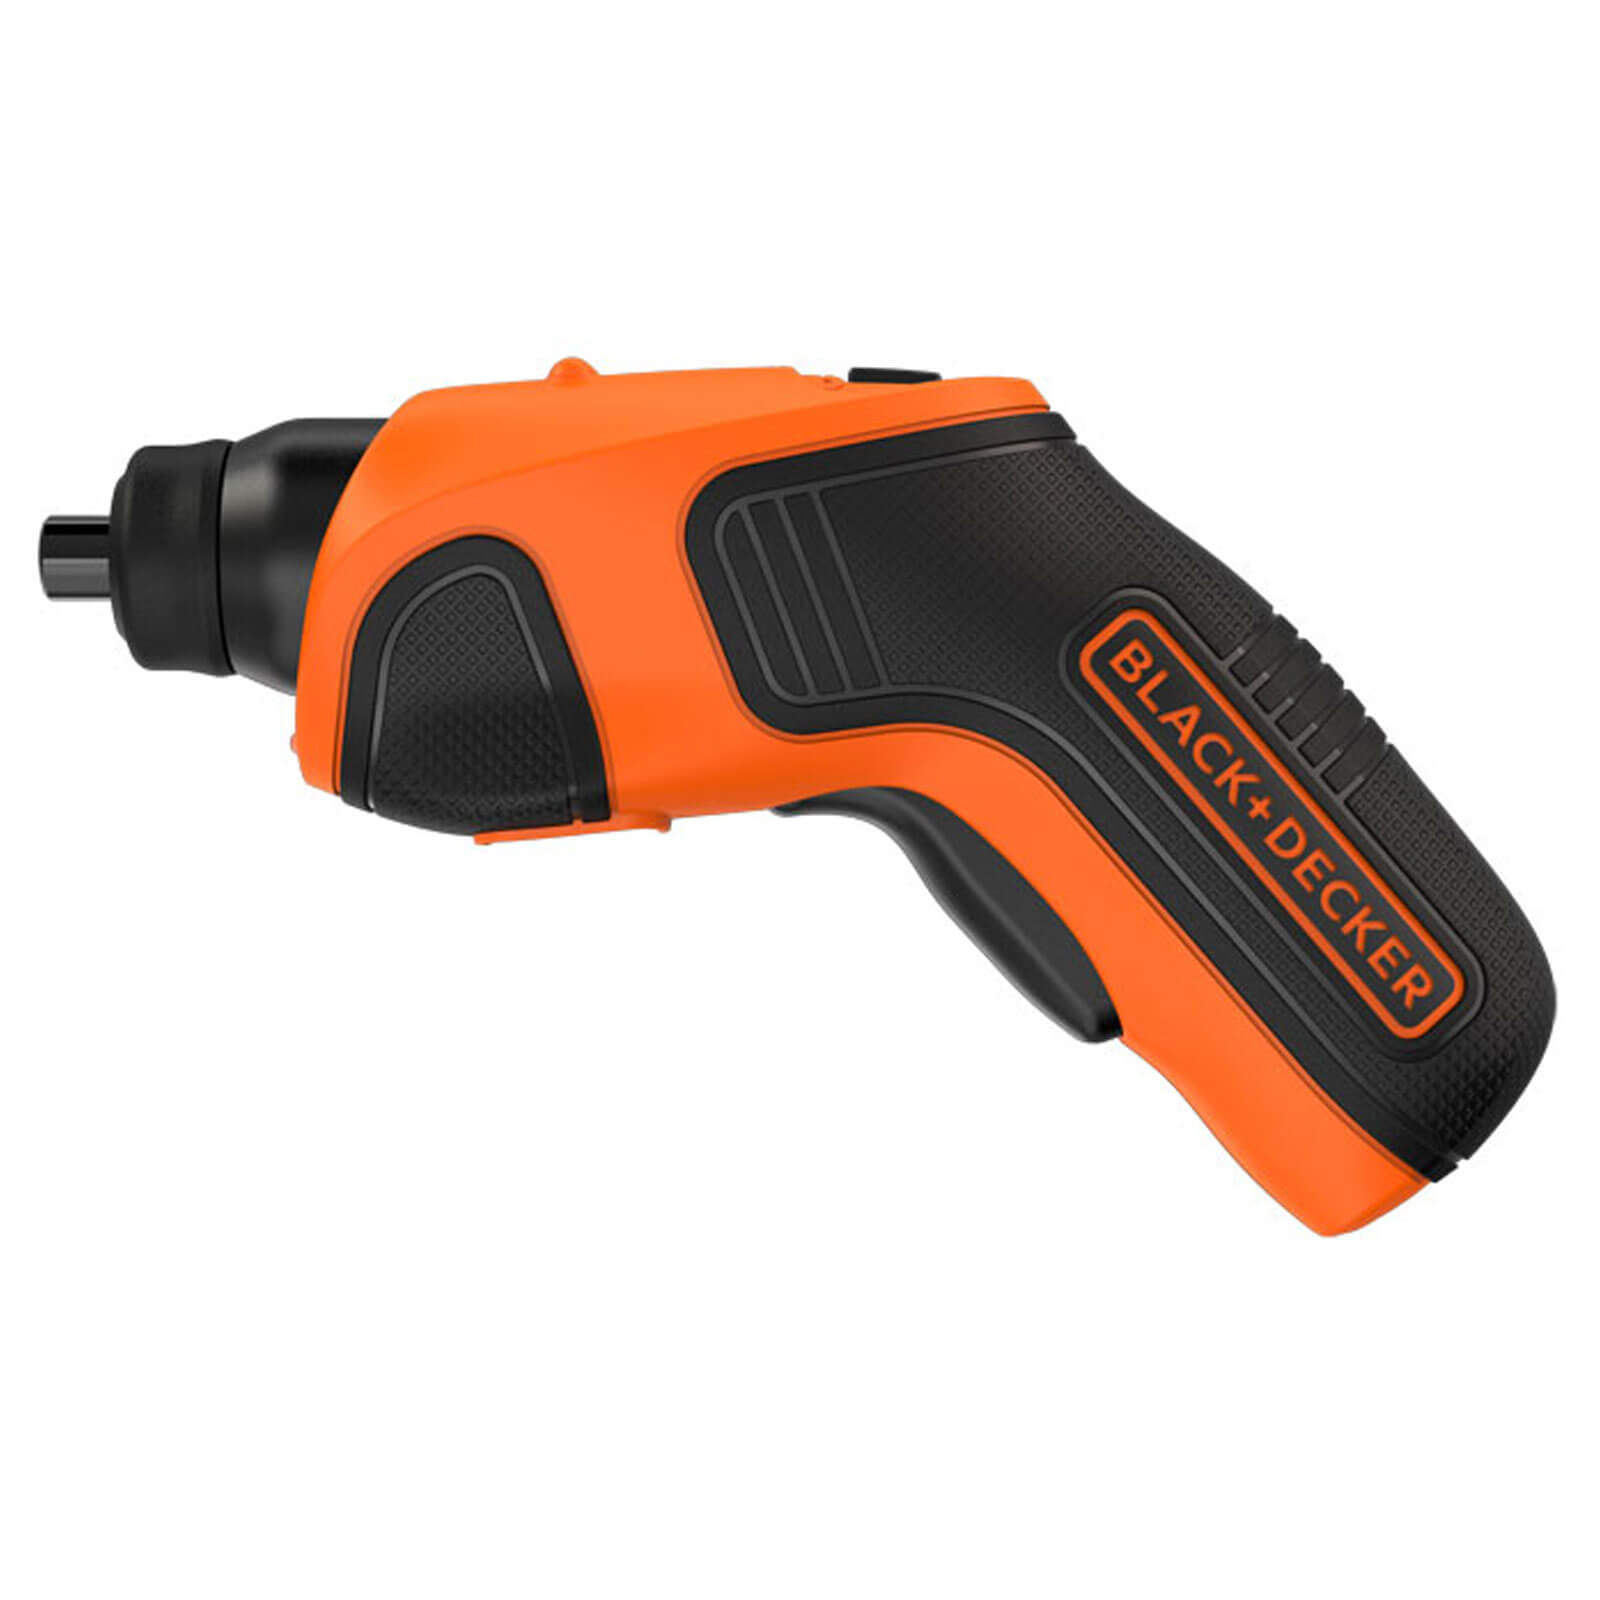 Black & Decker CS3651LC OPP 3.6v Cordless Screwdriver with Integrated Lithium Ion Battery